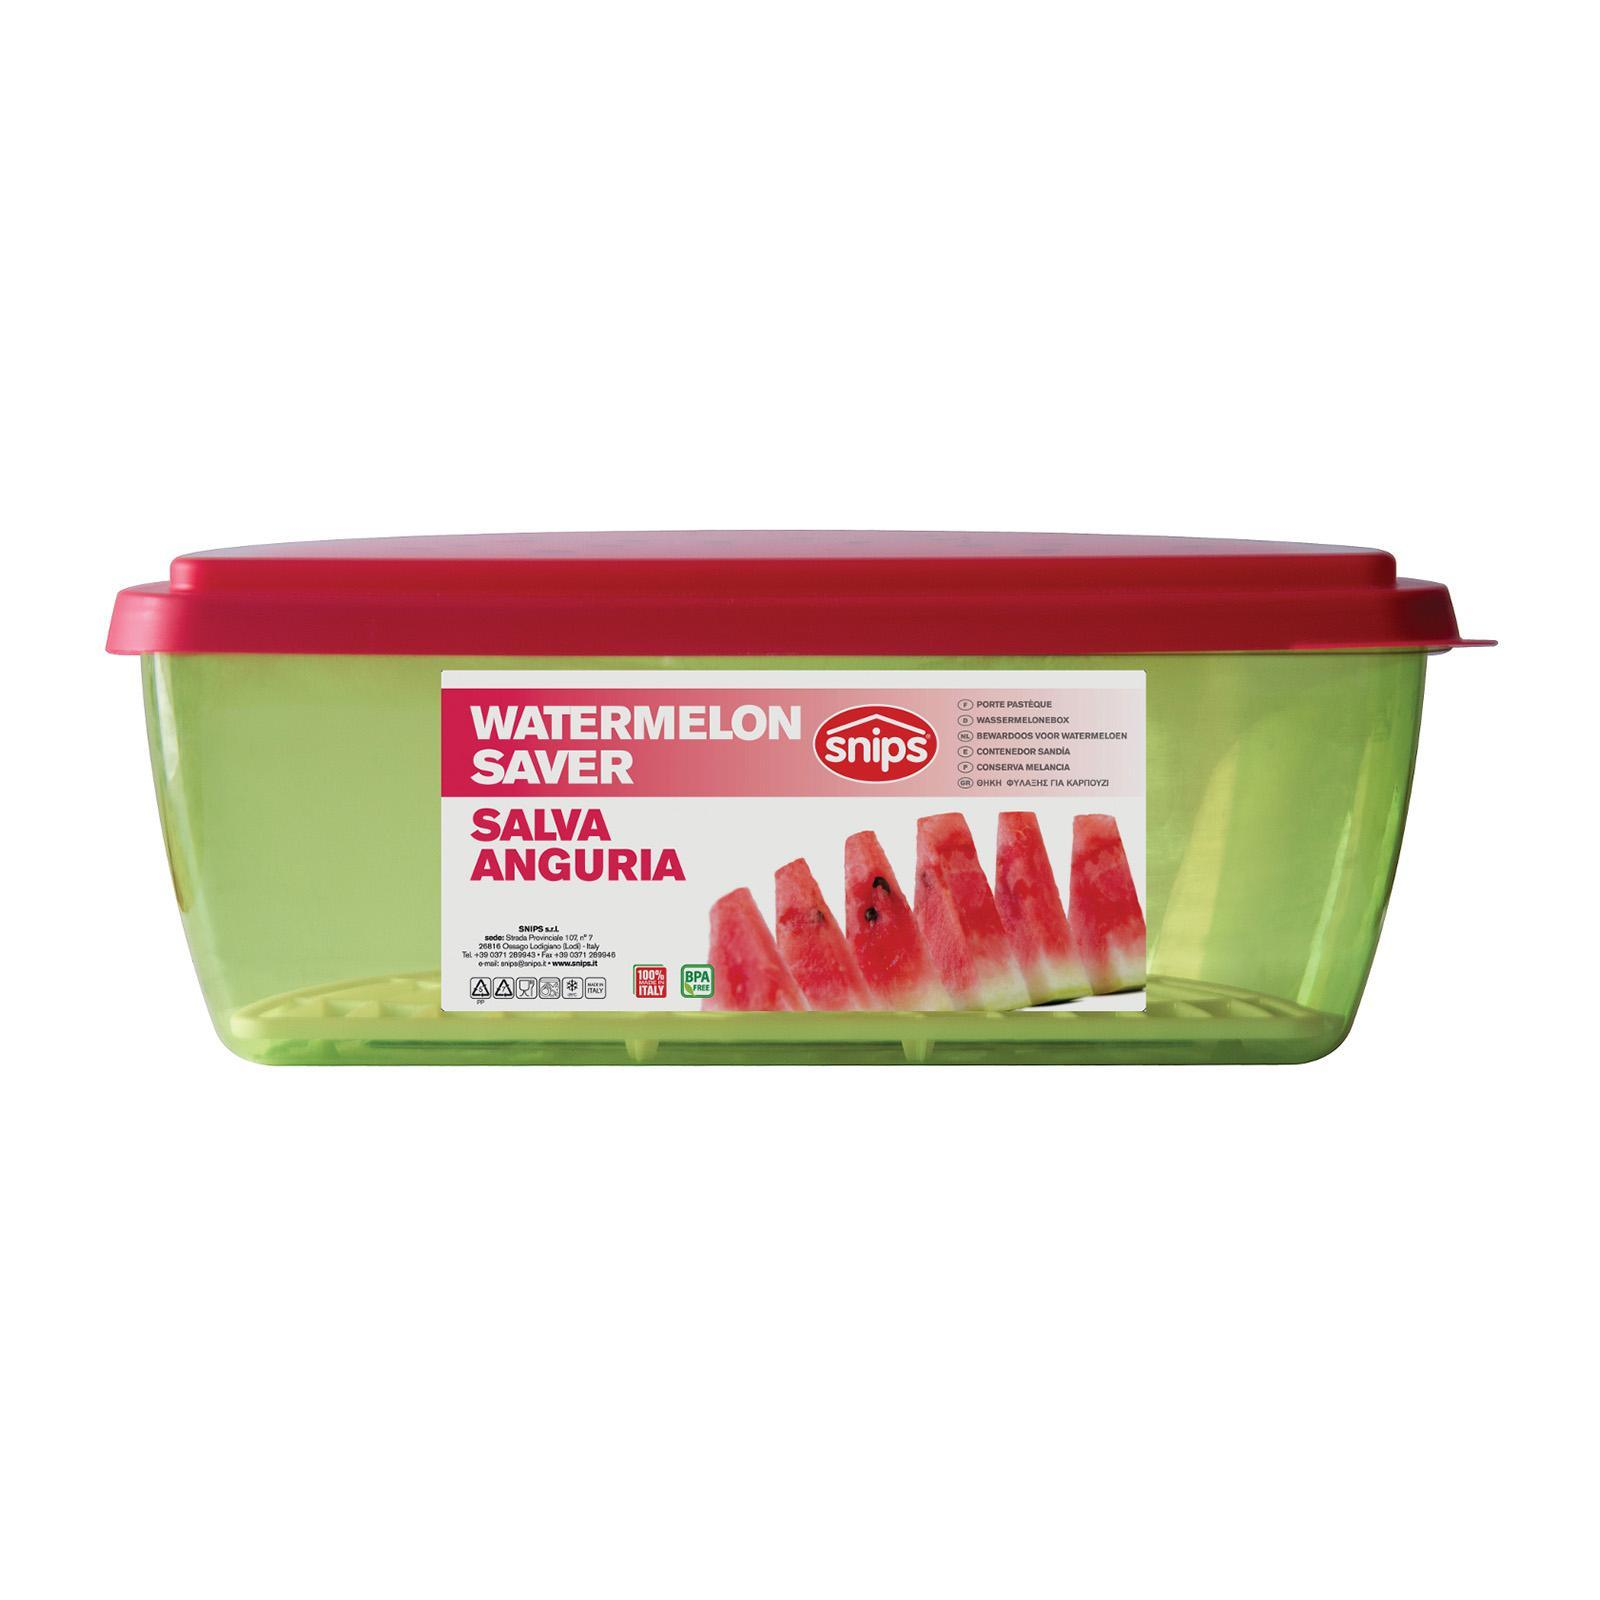 Snips Watermelon Saver 3L